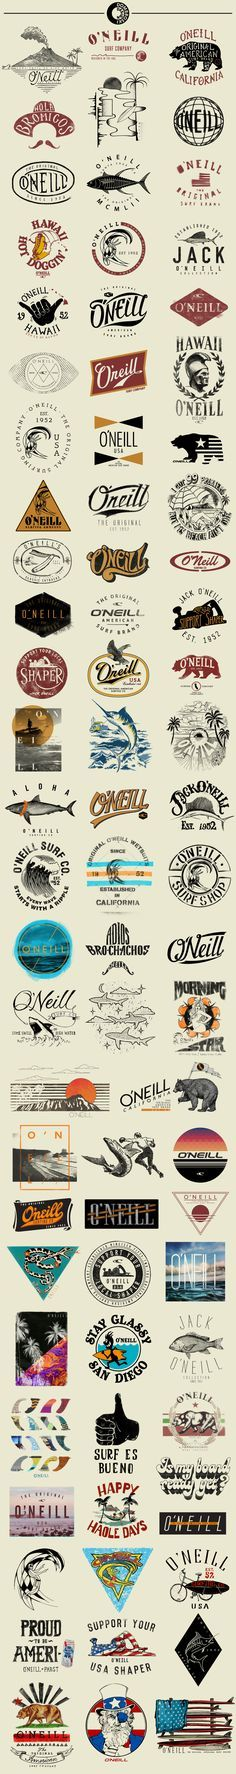 O'Neill T-Shirt Graphics by Ray Dombroski